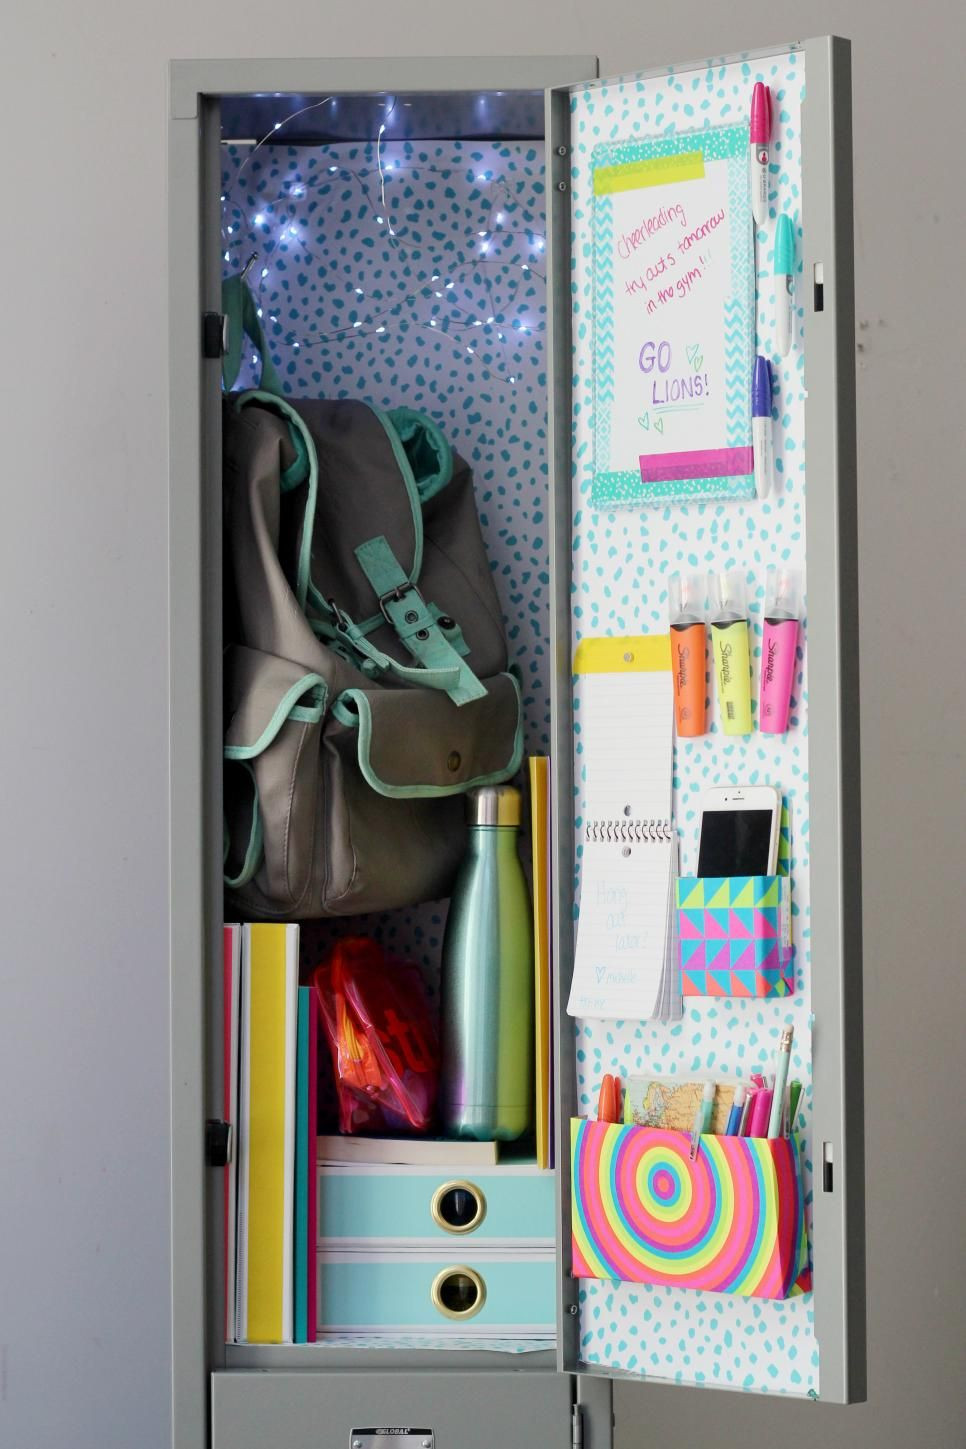 Best ideas about DIY Locker Decorations And Organization . Save or Pin 22 DIY Locker Decorating Ideas Back to School Now.